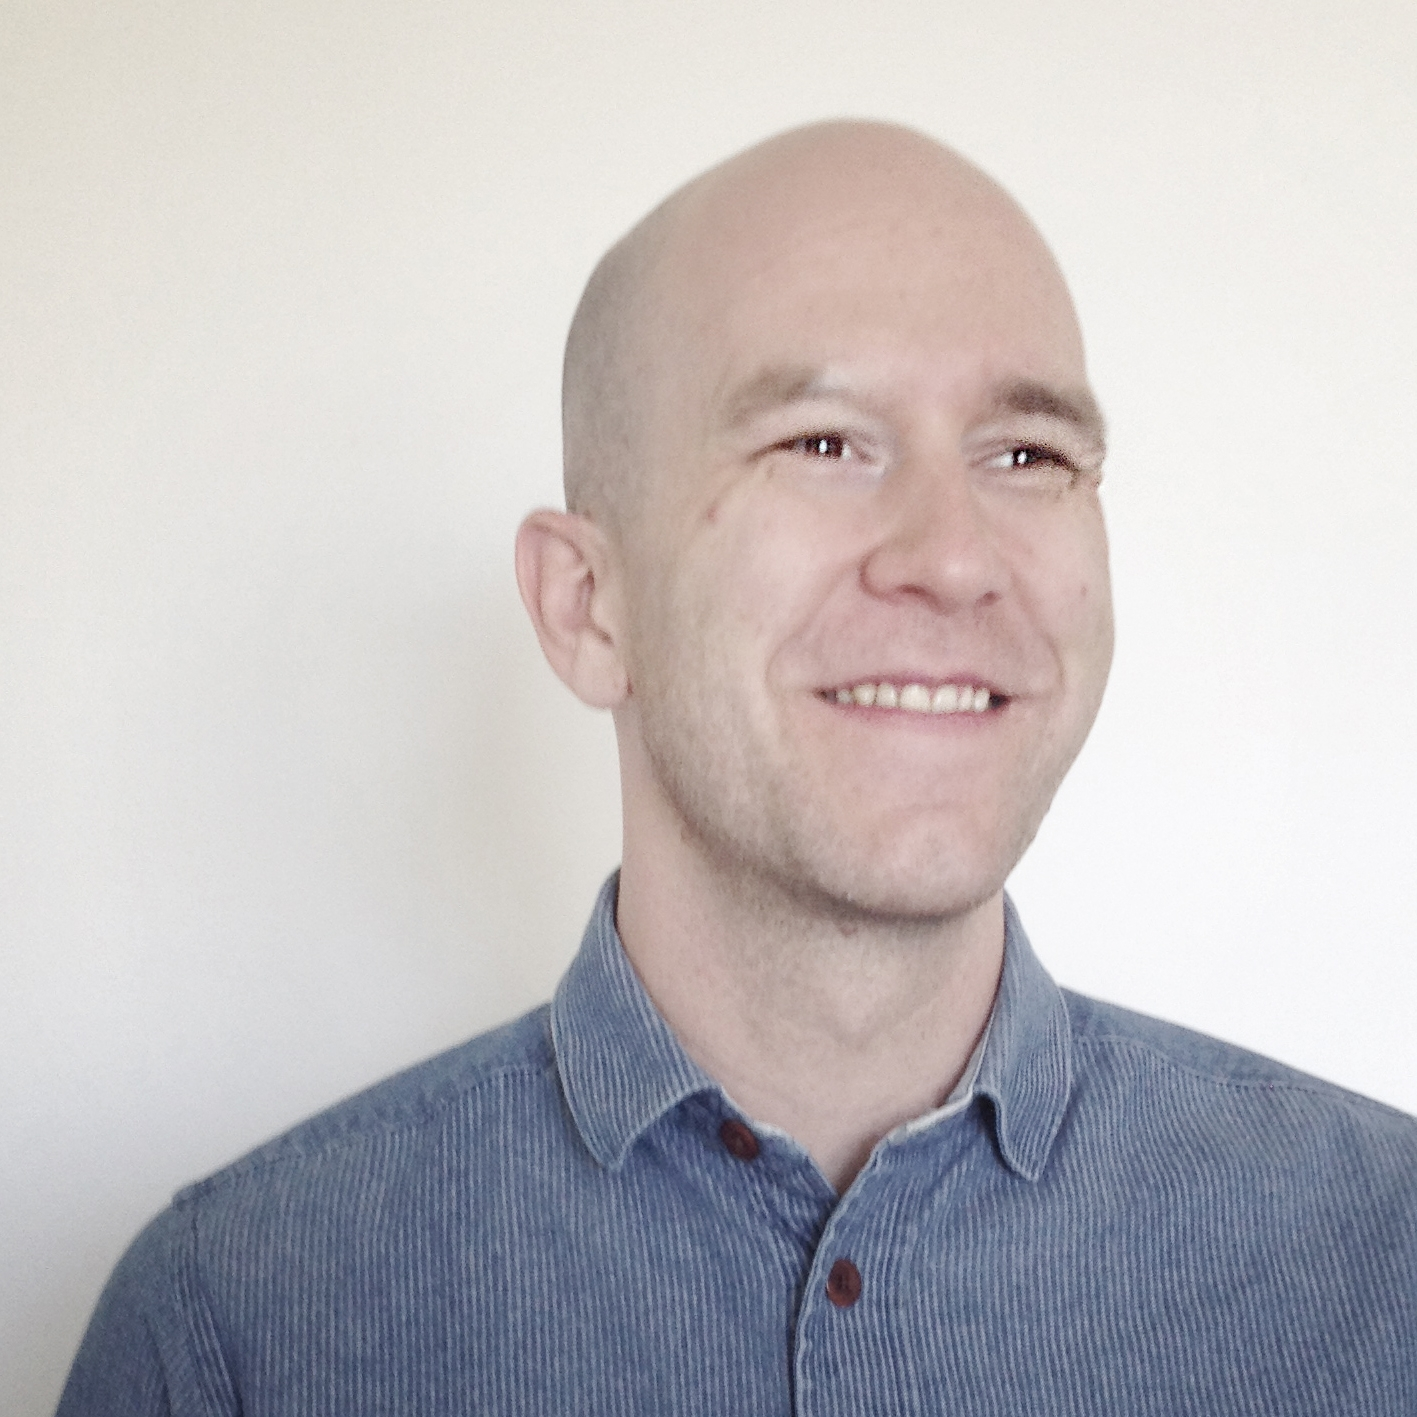 ANDREW SIDDALL, SENIOR PROJECT LEADER